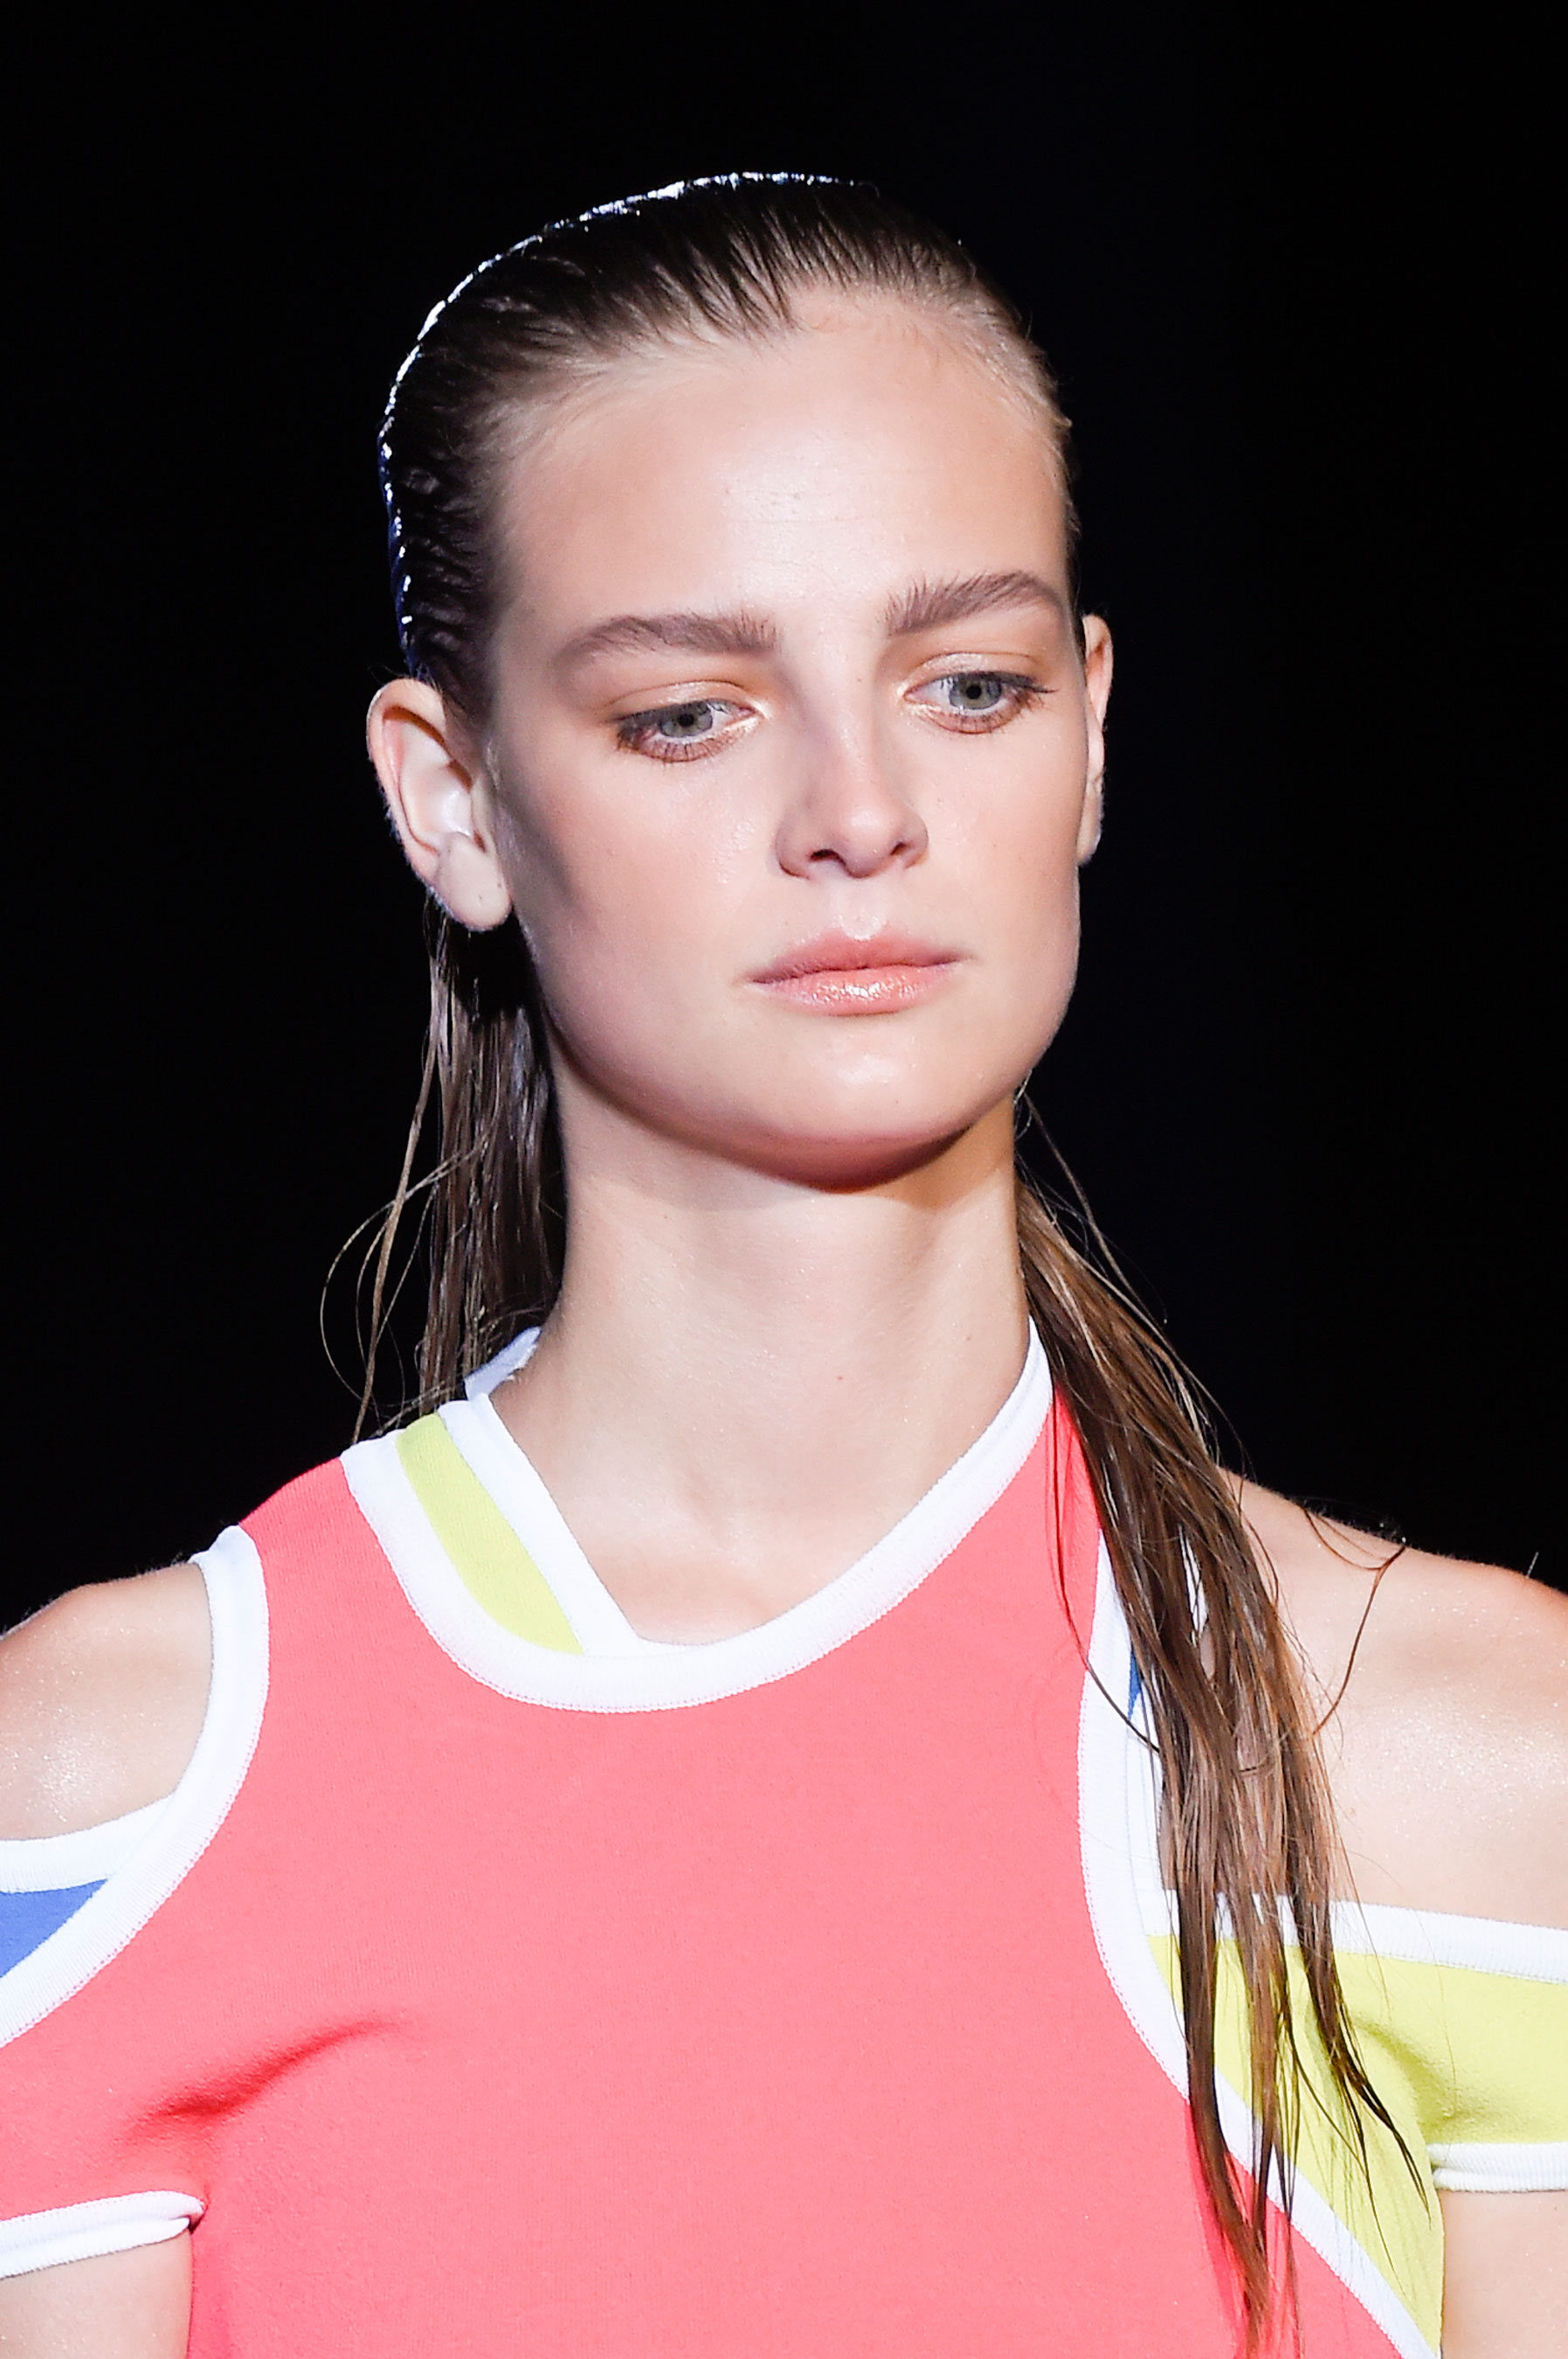 DSquared2-runway-beauty-spring-2016-fashion-show-the-impression-018